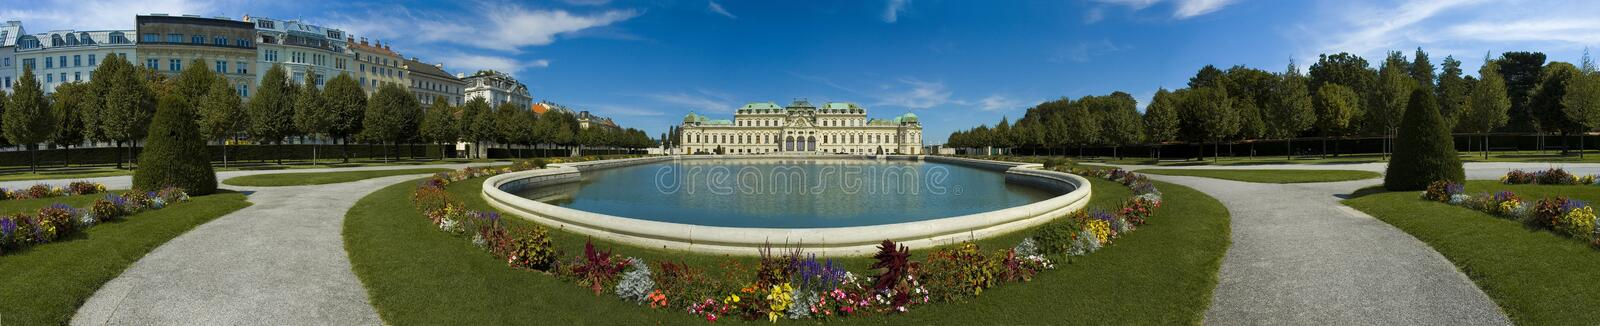 Upper Belvedere Palace. Former main summer residence of Prince Eugene, finished in 1723 royalty free stock images